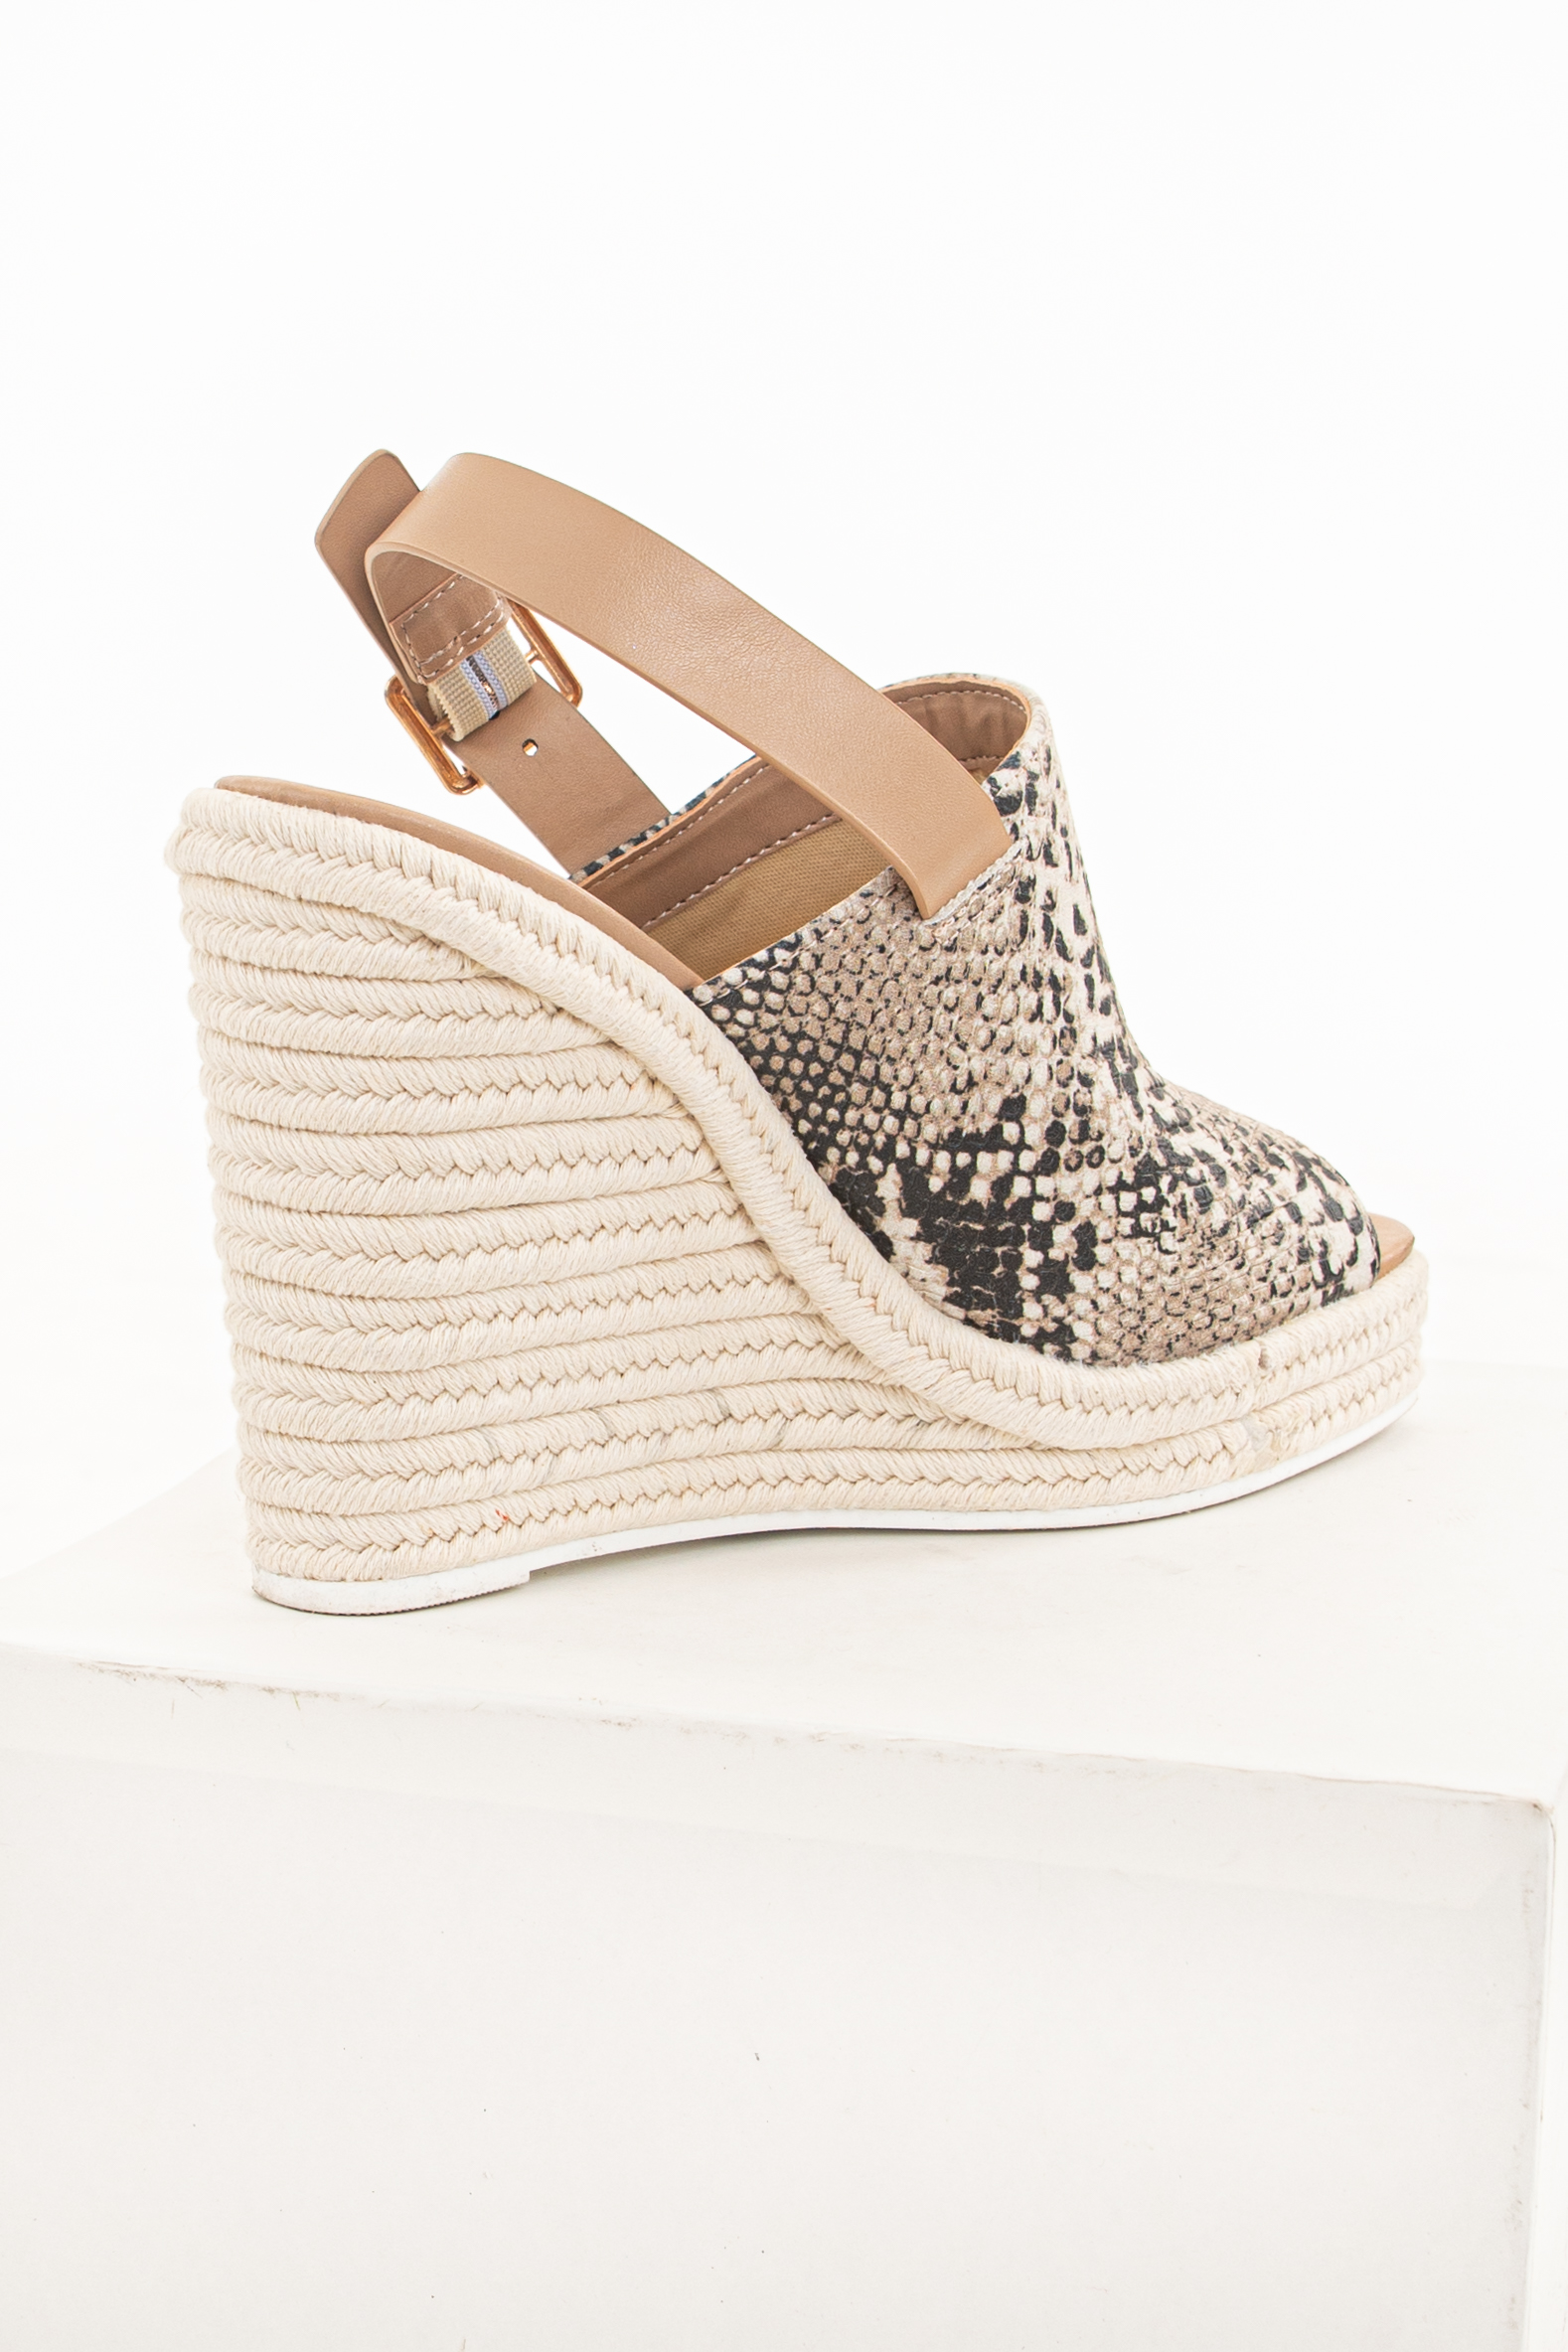 Latte Snake Print Espadrille Wedges with Open Toe and Strap